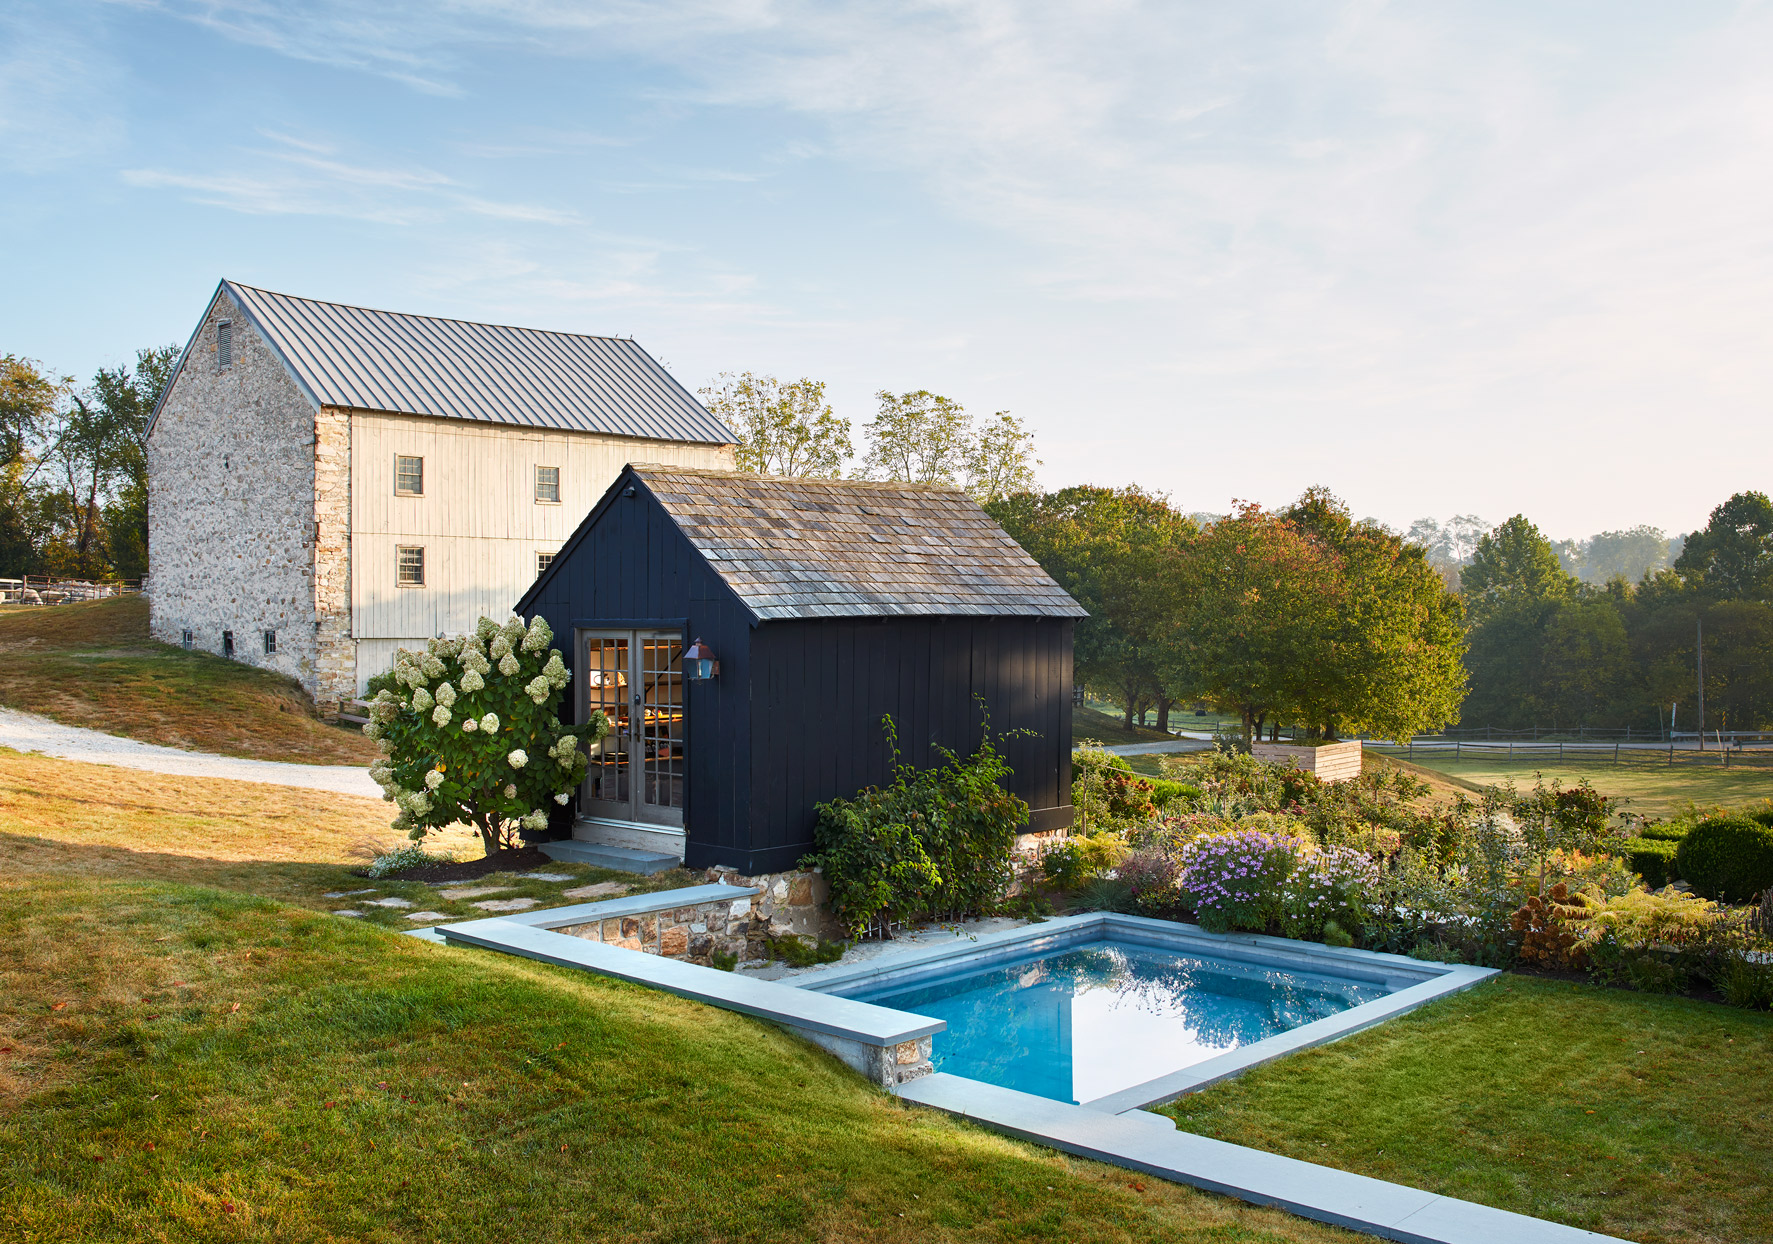 the pool and carriage house landscaped with bright flowers